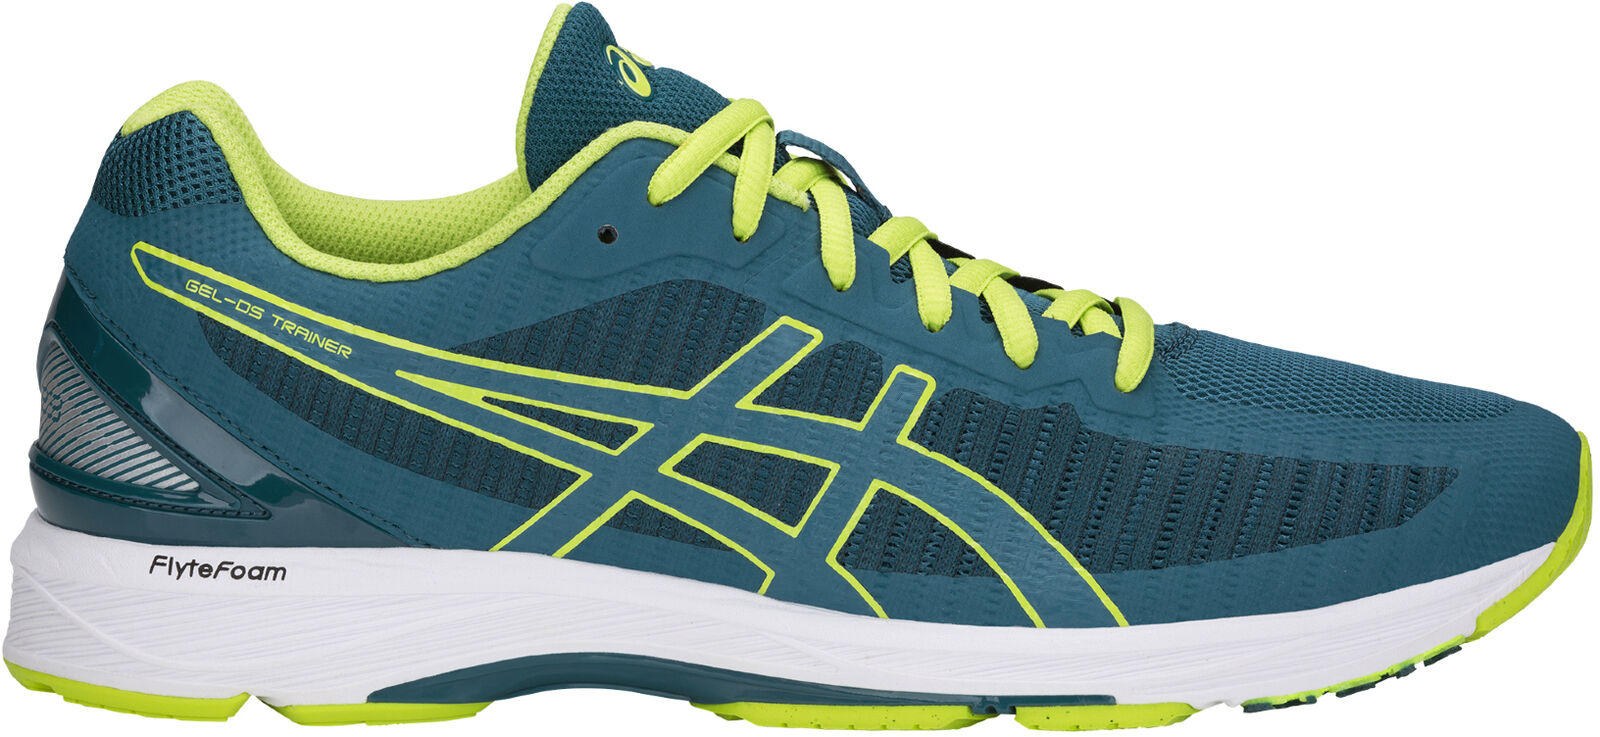 Asics Gel DS Trainer 23 Mens Running shoes - Green